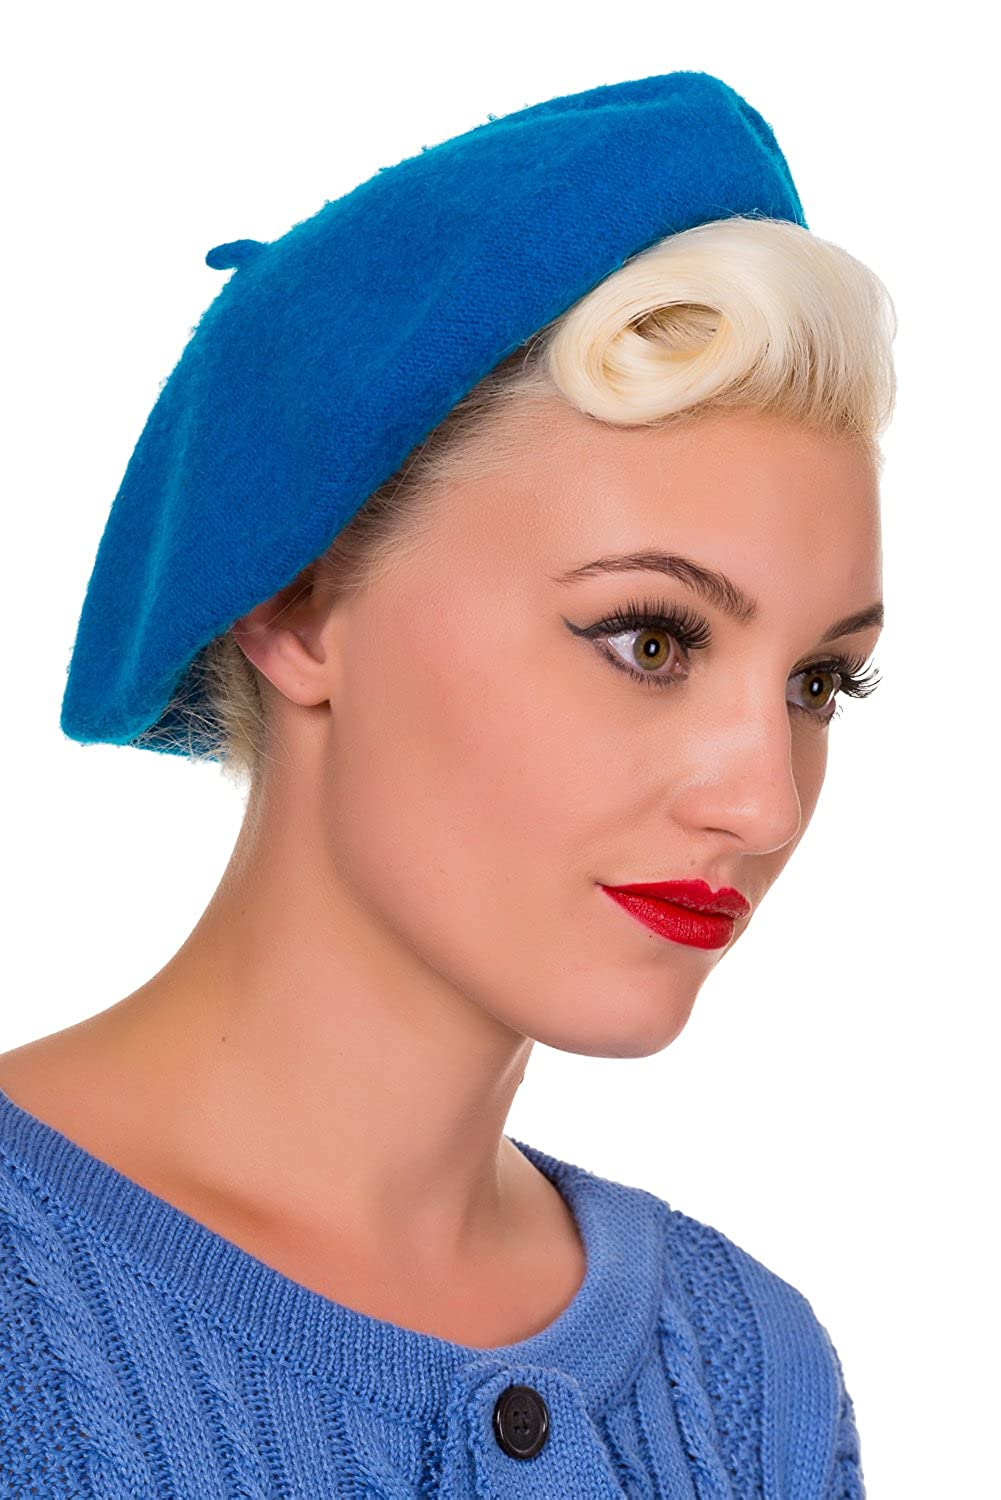 1940s Hats History Banned Claire Vintage Retro Beret Hat $15.95 AT vintagedancer.com